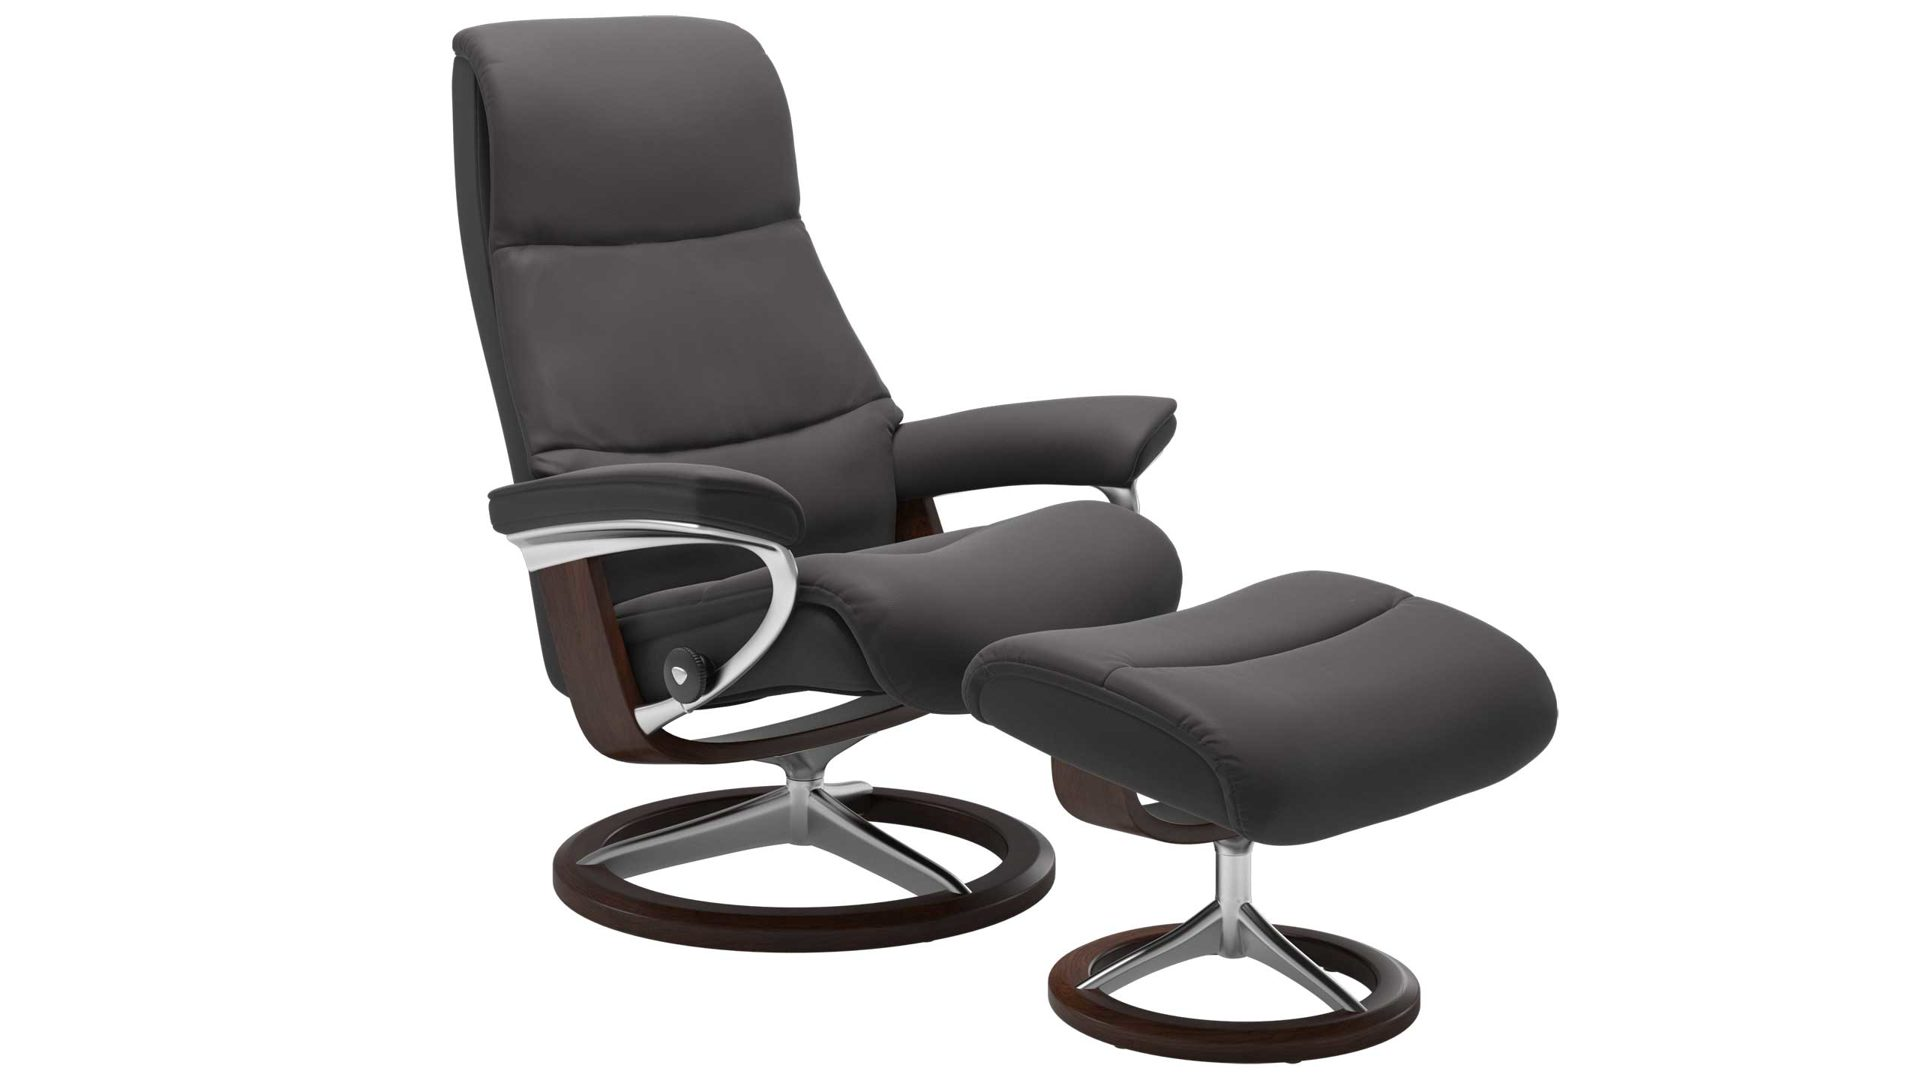 Stressless View M Signature Relax Sessel Und Hocker Leder Signature Brown Bad Homburg Bei Frankfurt